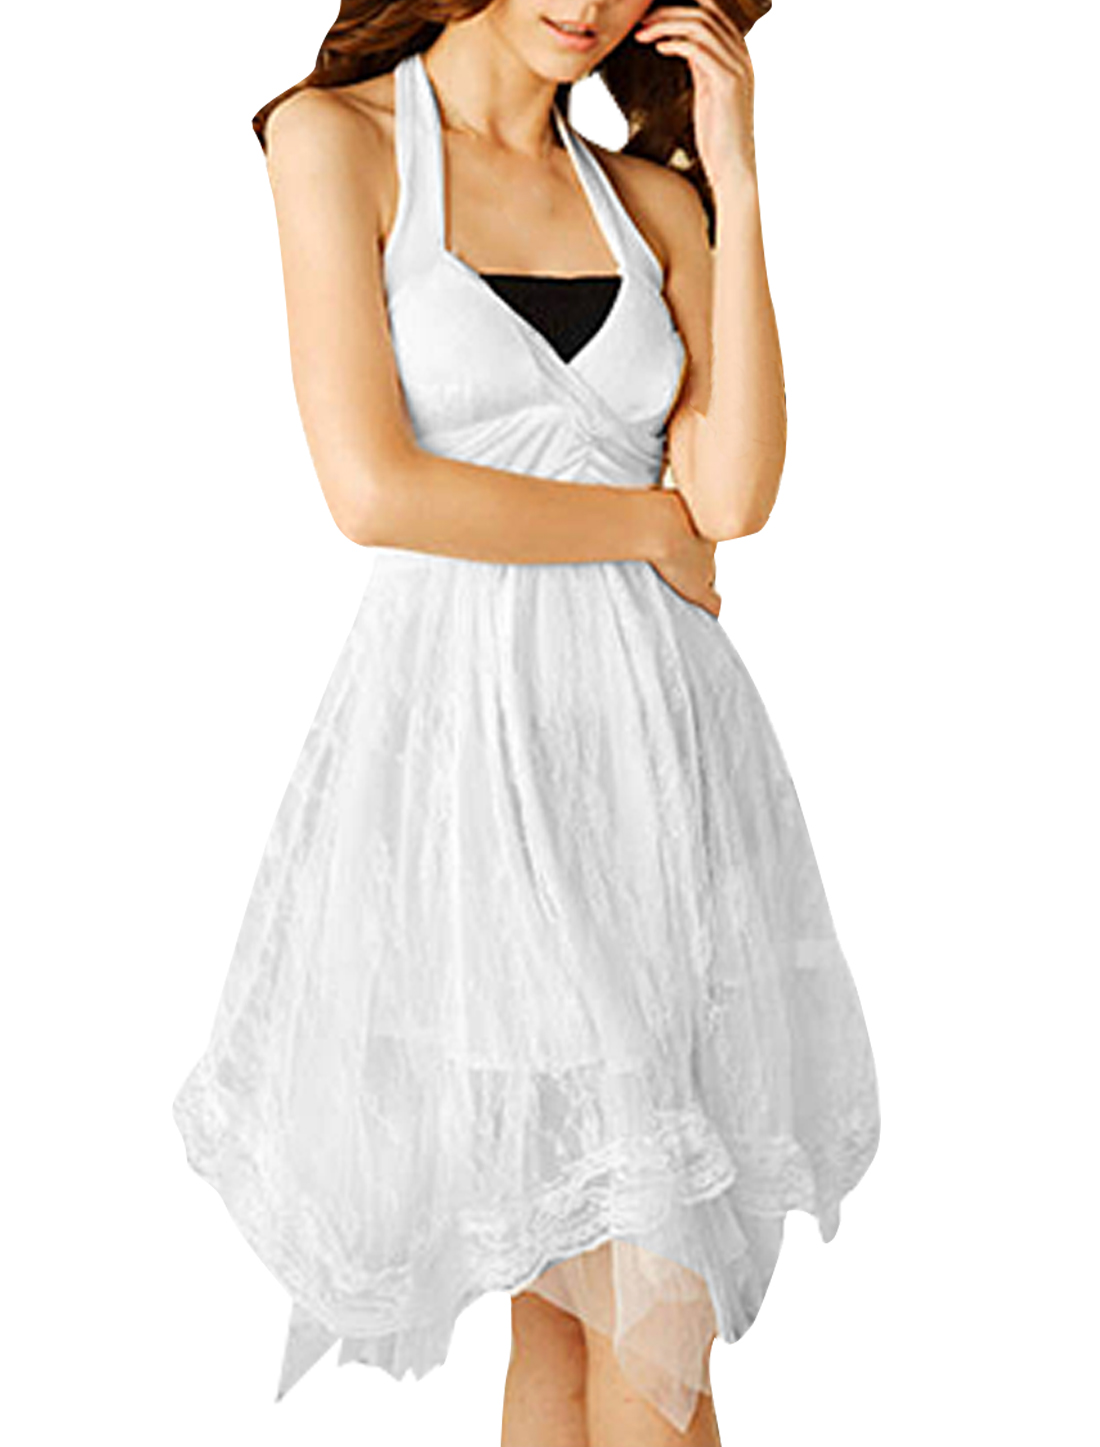 Women Fashion Deep V Neck Sleeveless Lace Dress White M